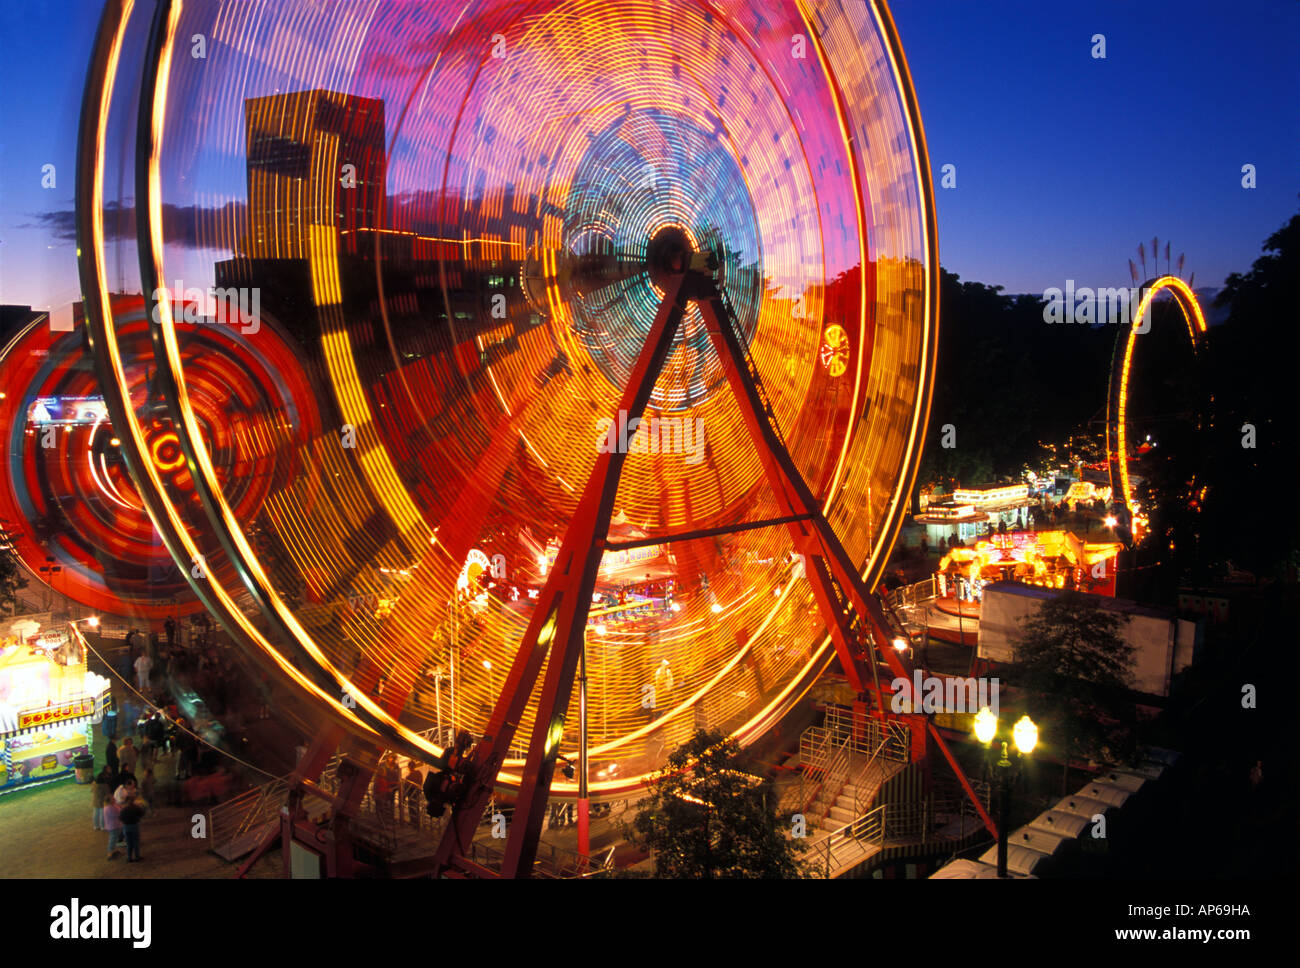 USA, Oregon, Portland, Ferris wheel in the family fun center at